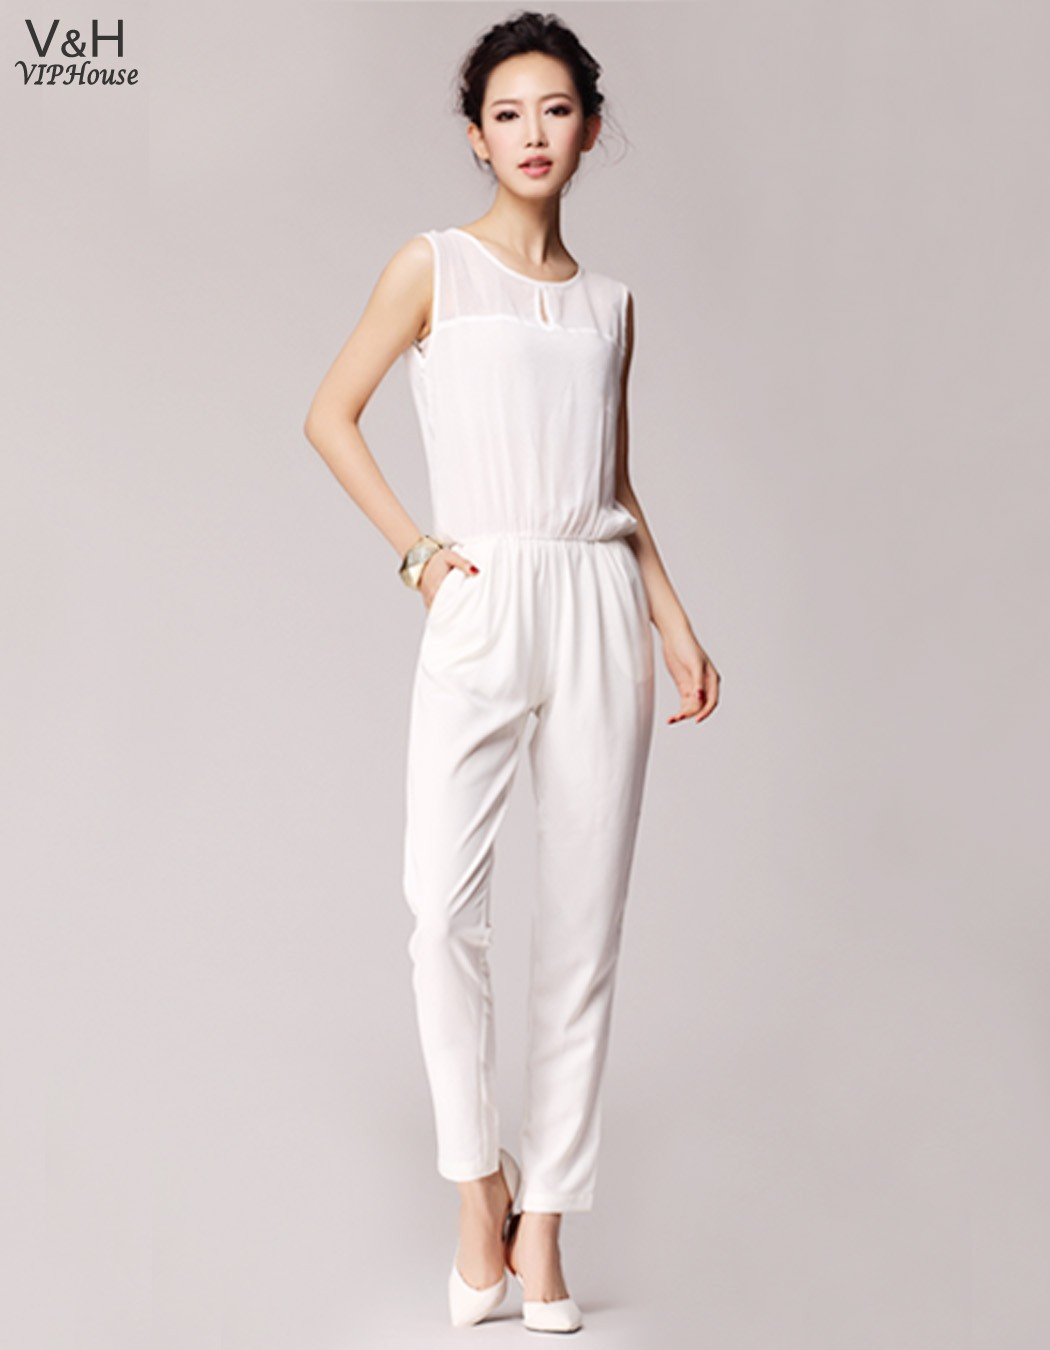 Lowe Price Fashion Woman Jumpsuit Sexy White Rompers Open ...